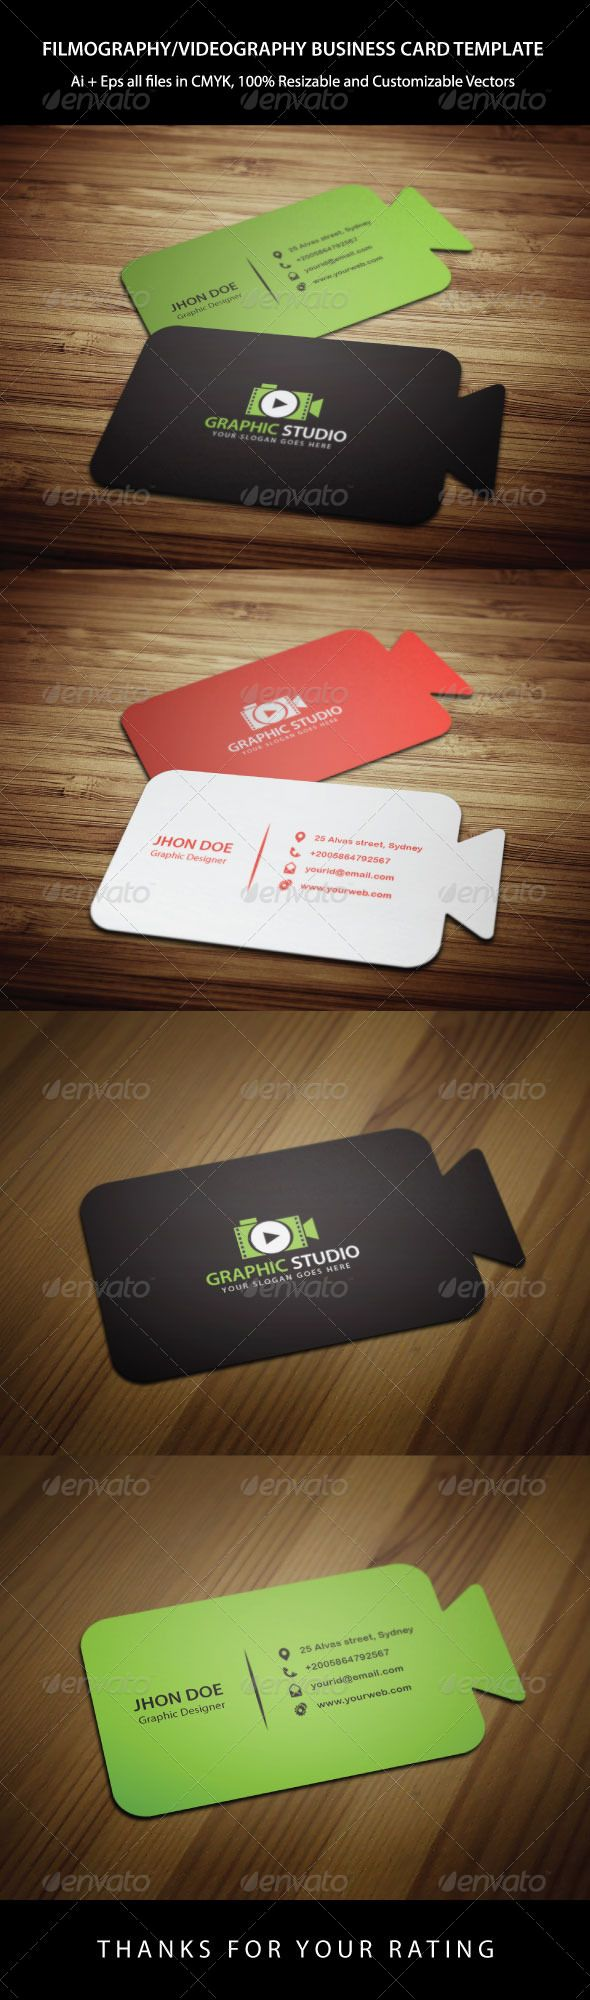 Cinematography business card template pinterest card templates cinematography business card template design download httpgraphicriveritemcinematography business card template 5948940refksioks flashek Gallery